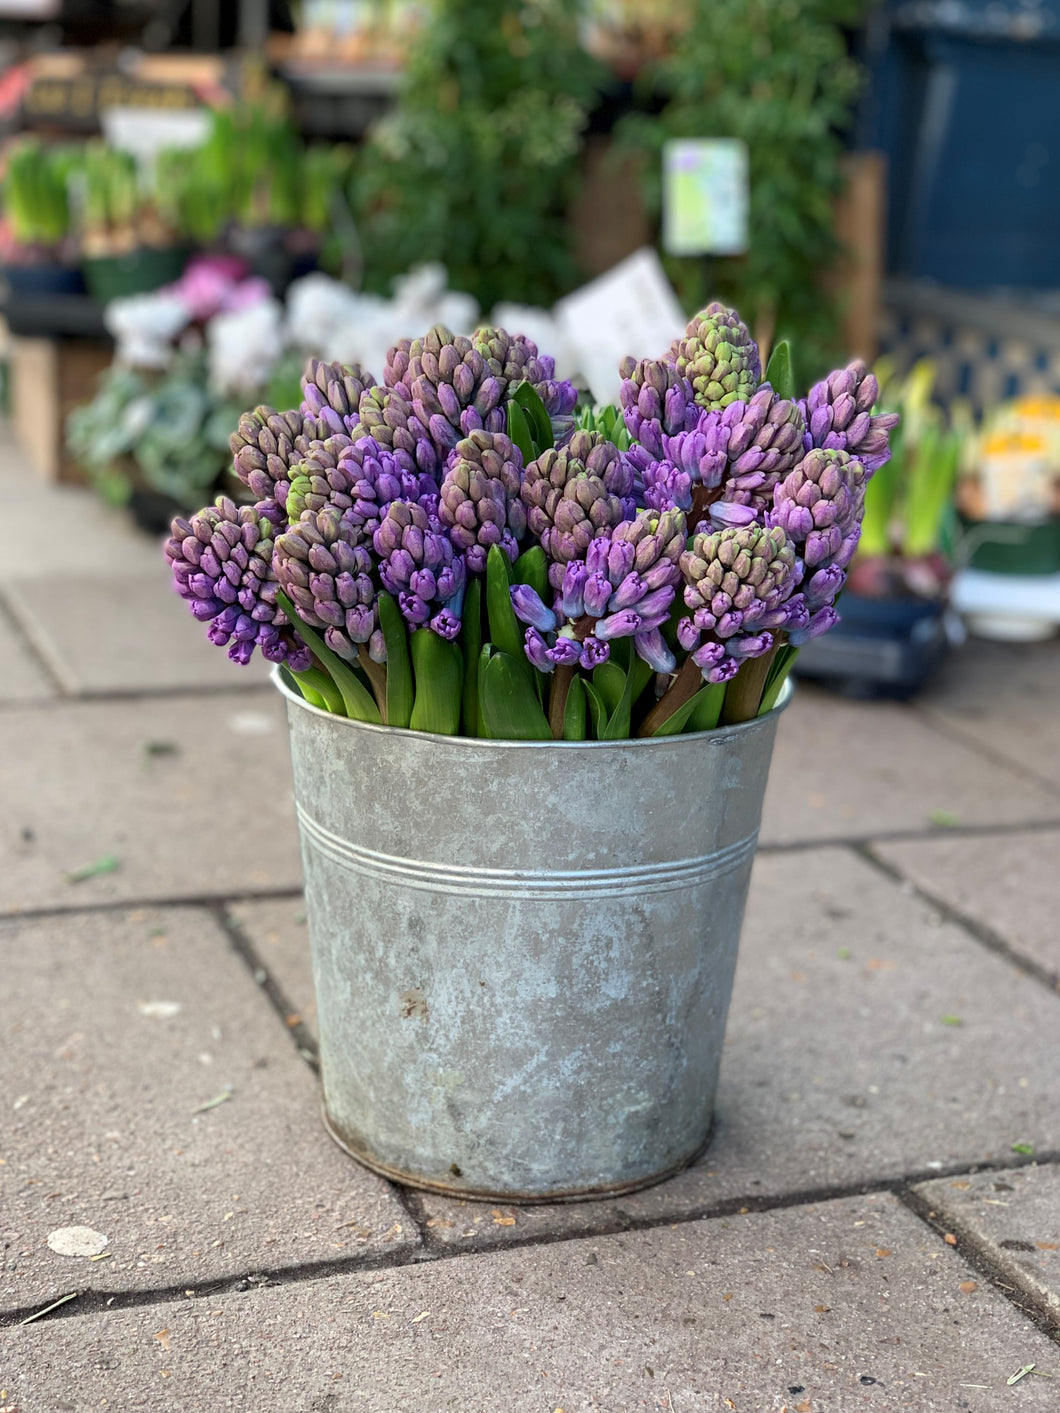 Our pick of the hyacinths